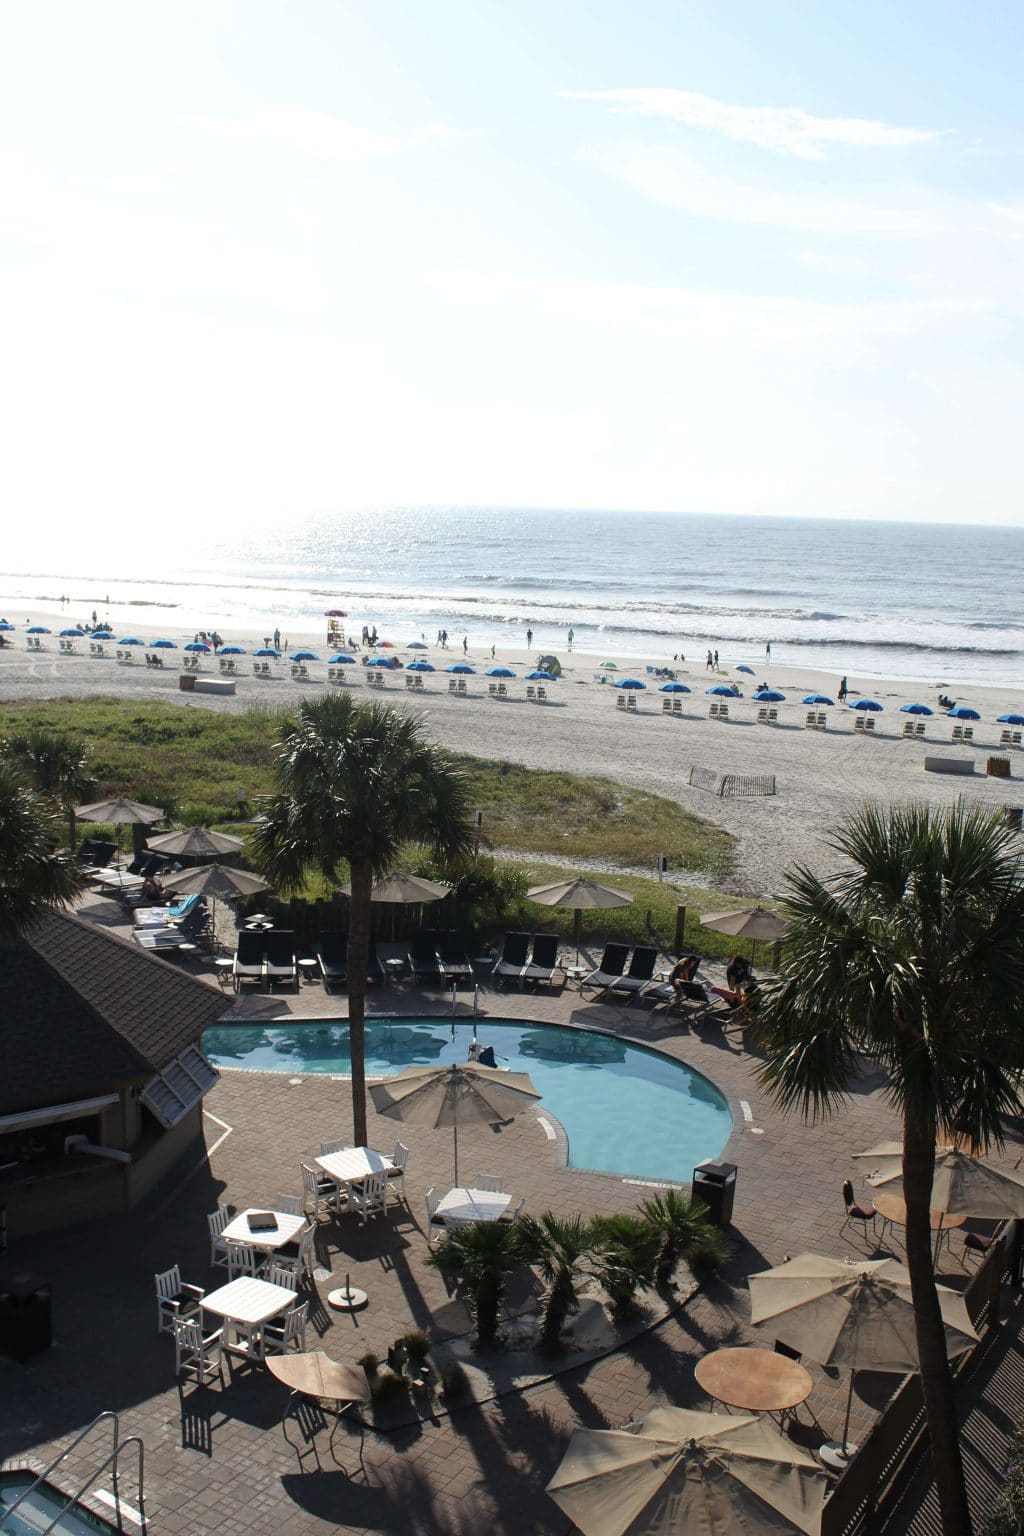 Weekend Getaway to Hilton Head Island